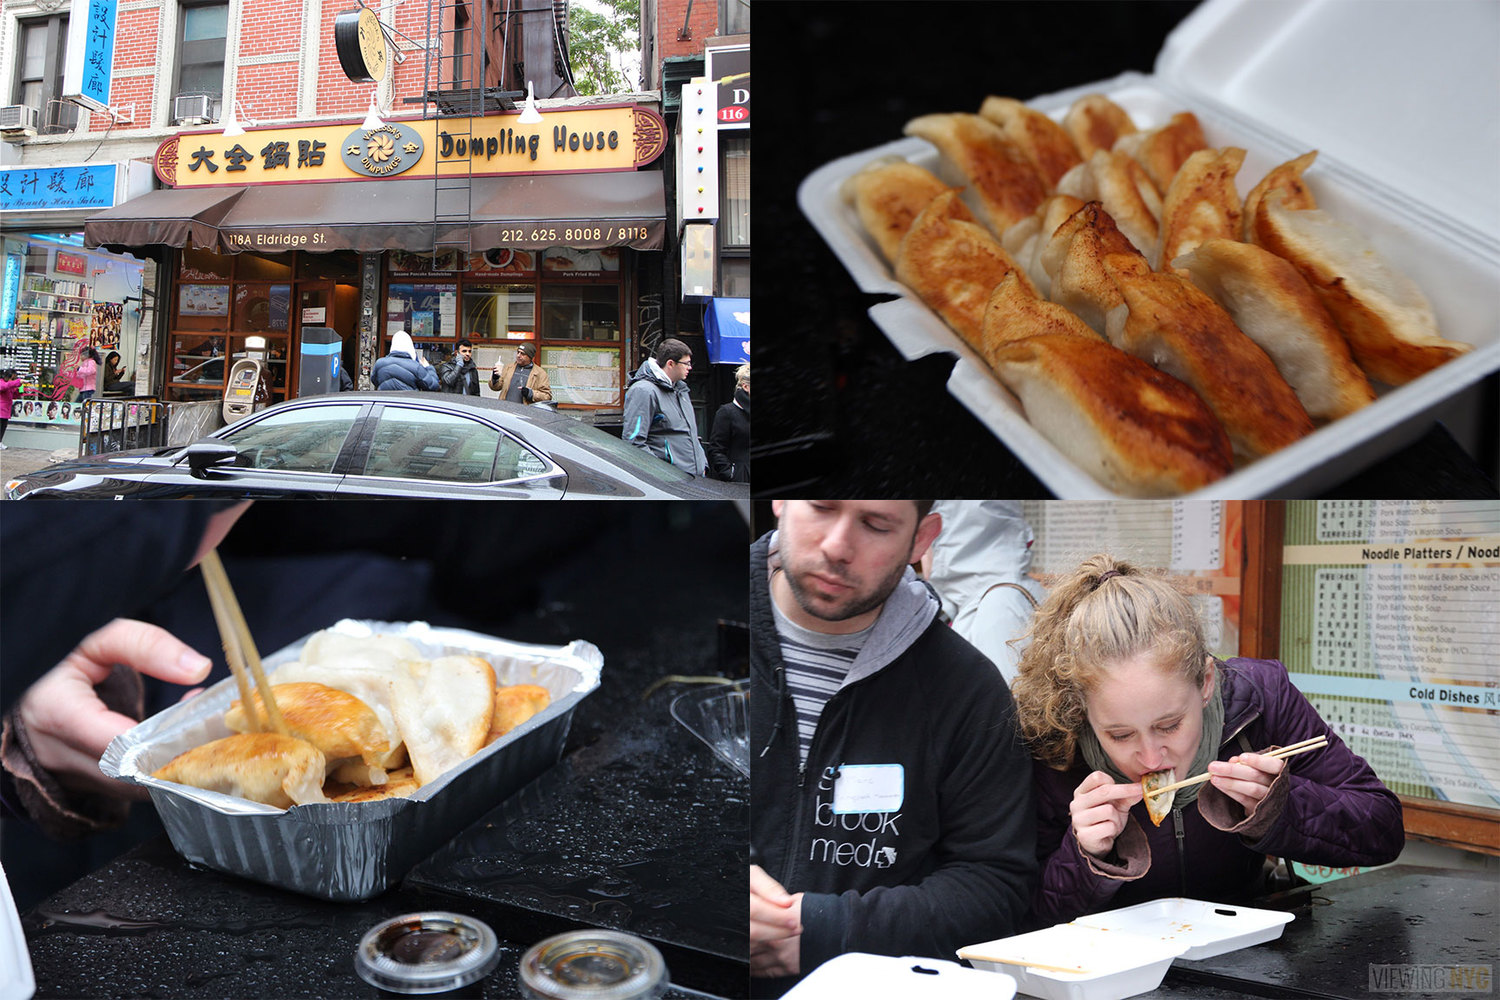 "Vanessa's Dumpling House | Check out Viewing NYC for more info on the 2015 Chinatown Dumpling Crawl and to see who won!  <a href=""https://viewing.nyc/the-best-dumpling-in-the-2015-viewing-nyc-chinatown-dumpling-crawl-is/"" rel=""nofollow"">viewing.nyc/the-best-dumpling-in-the-2015-viewing-nyc-chi...</a>"